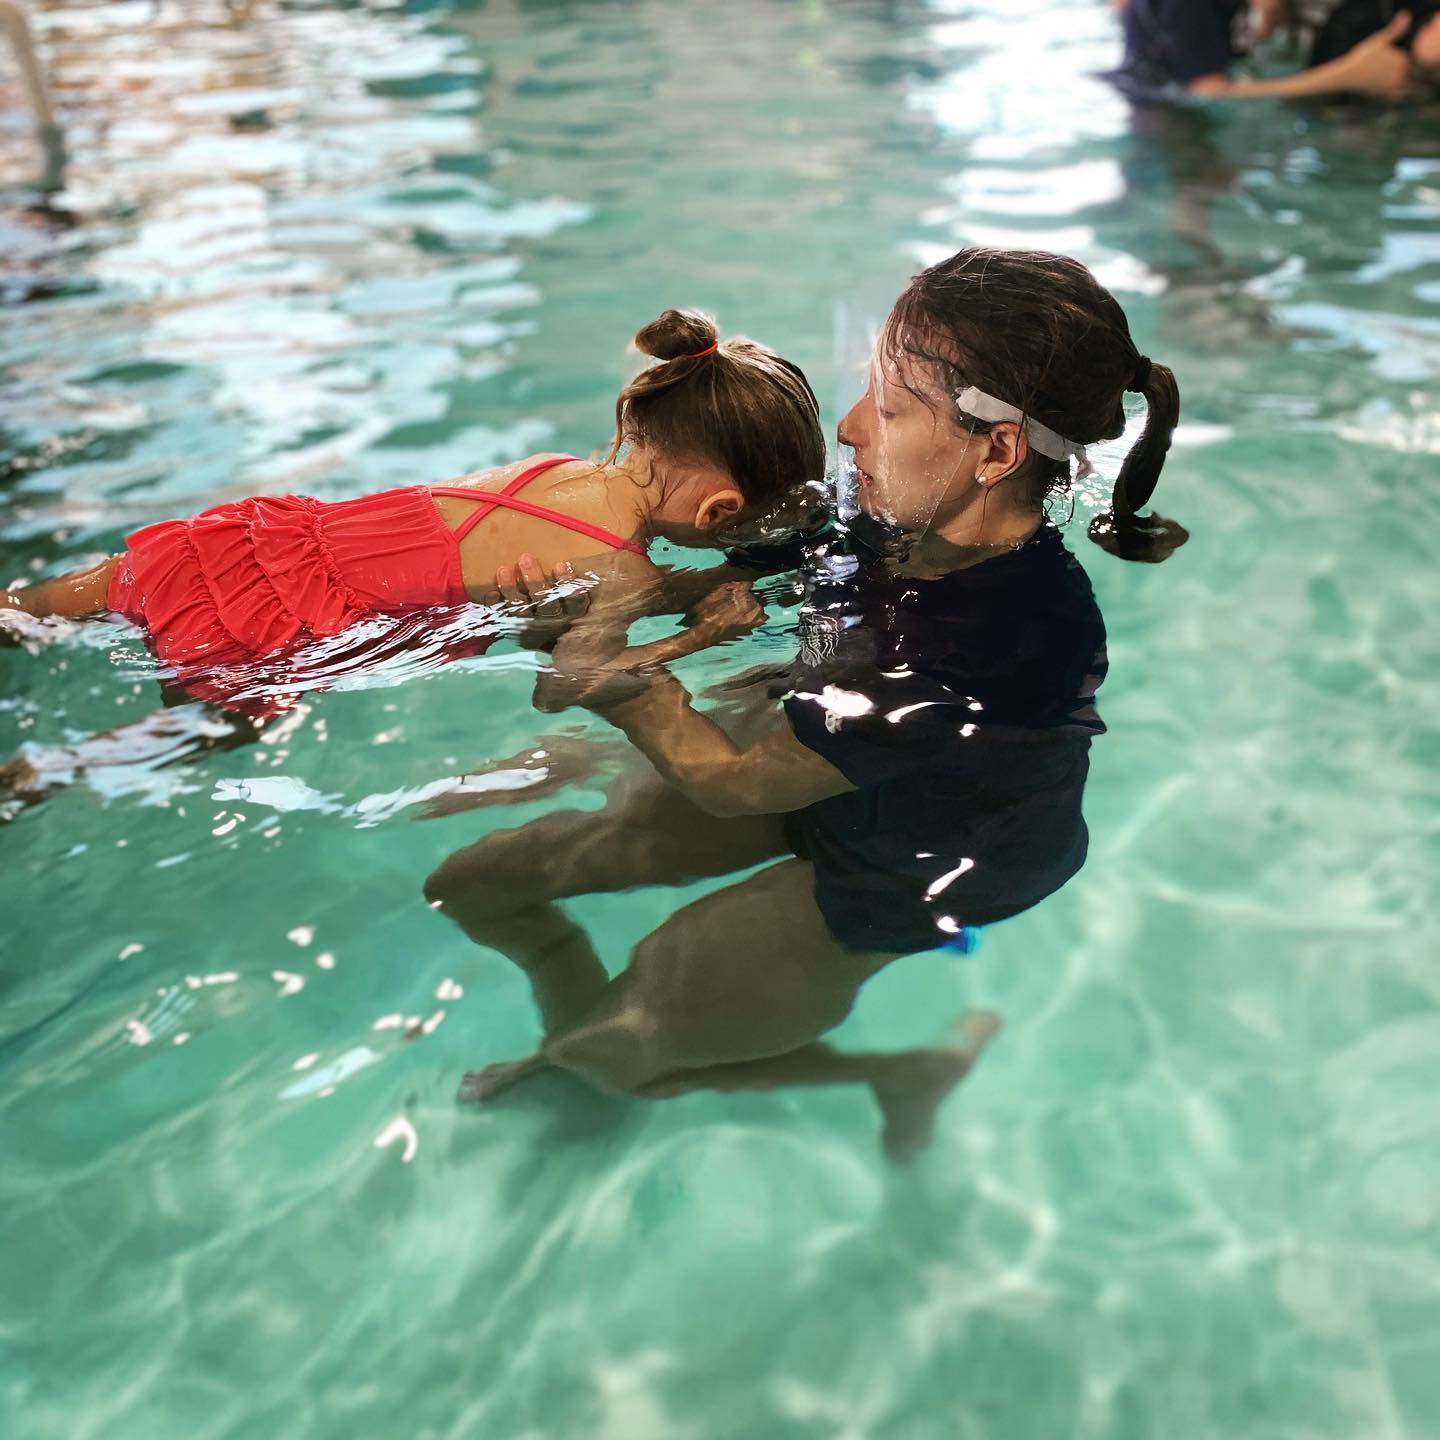 ASA Swim Instructor with face shield working with child face down in water